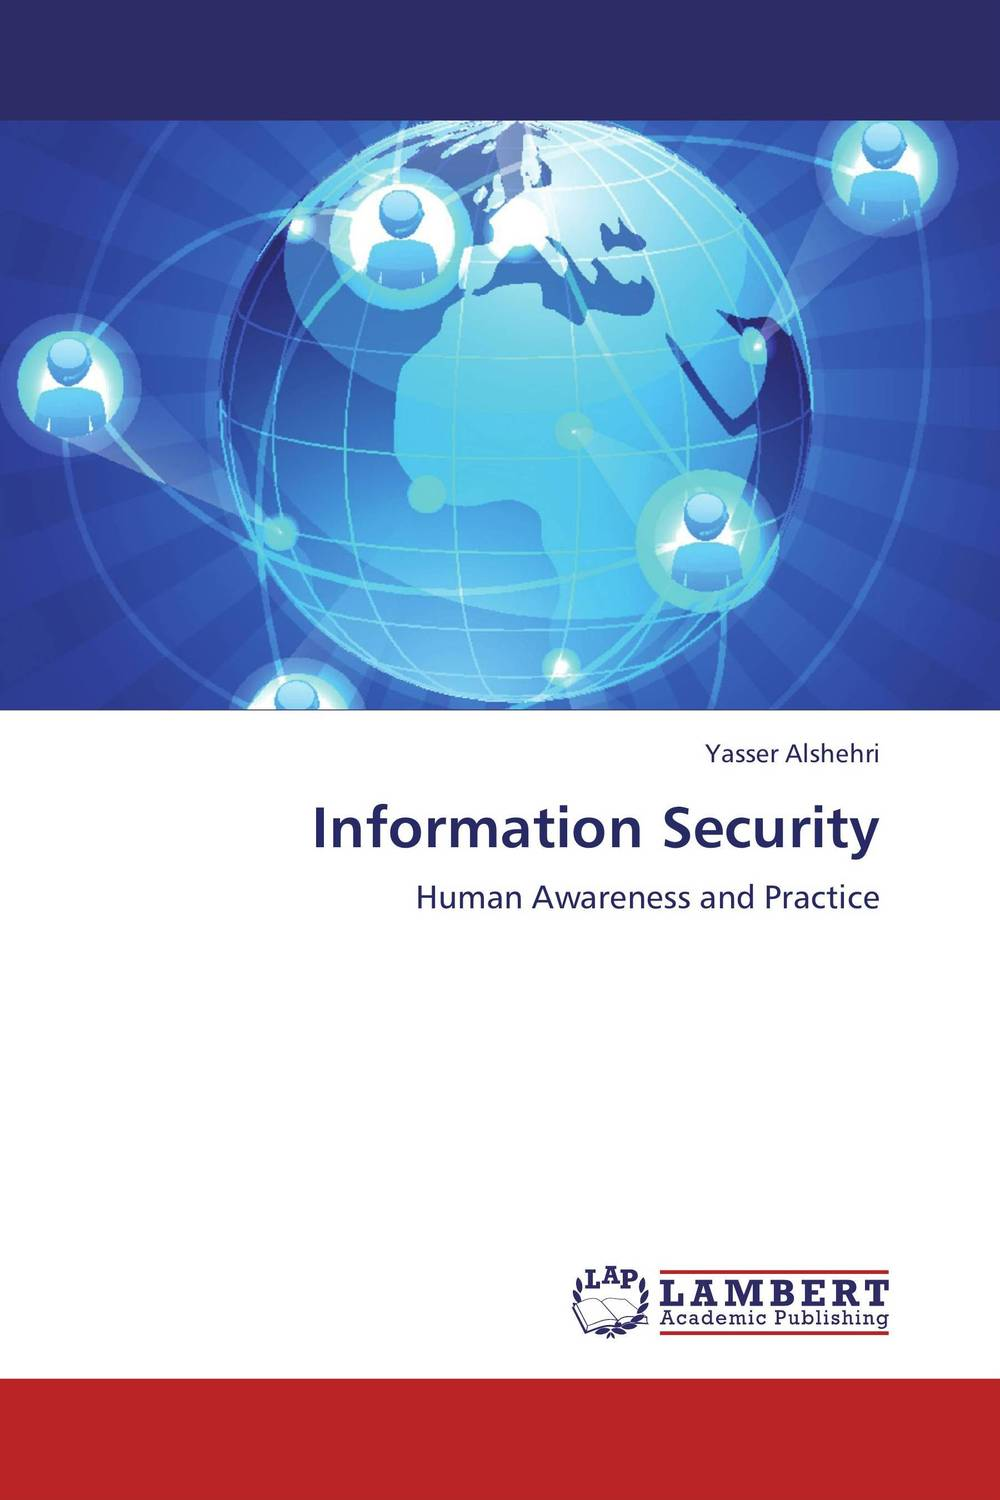 Information Security belousov a security features of banknotes and other documents methods of authentication manual денежные билеты бланки ценных бумаг и документов